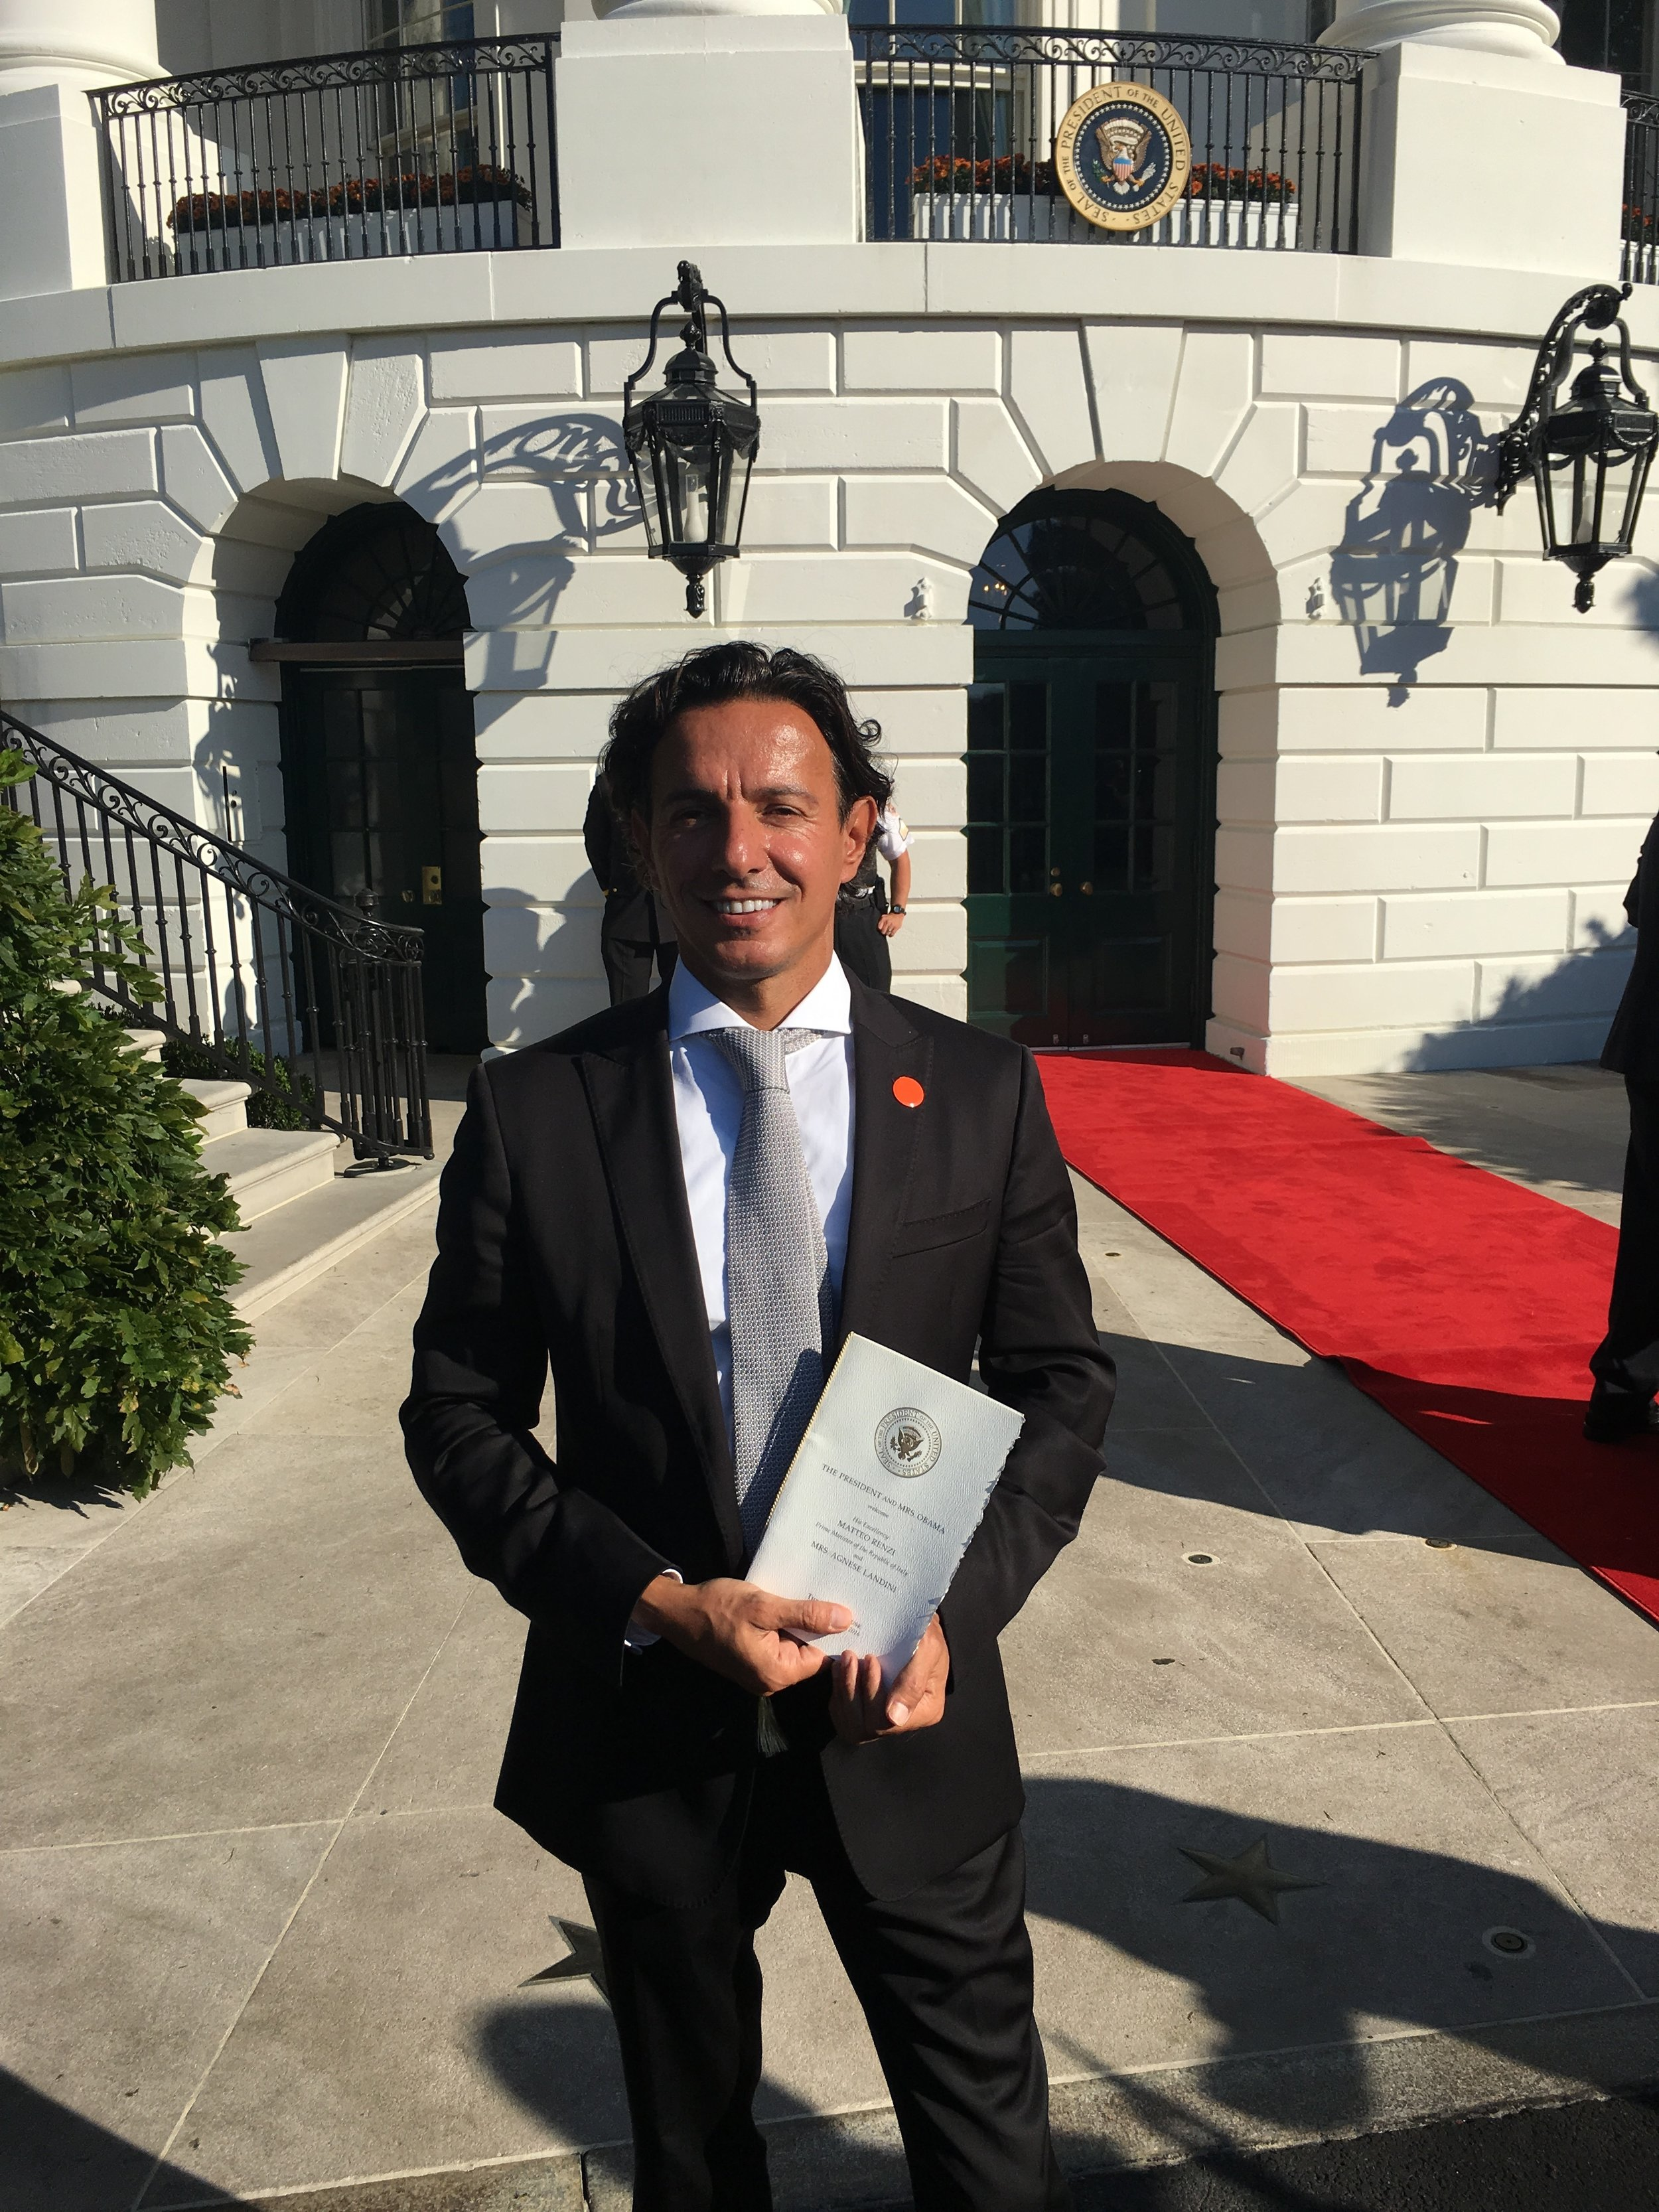 At the White House for the State visit of the Italian Prime Minister H.E. Matteo Renzi to President Barack Obama.